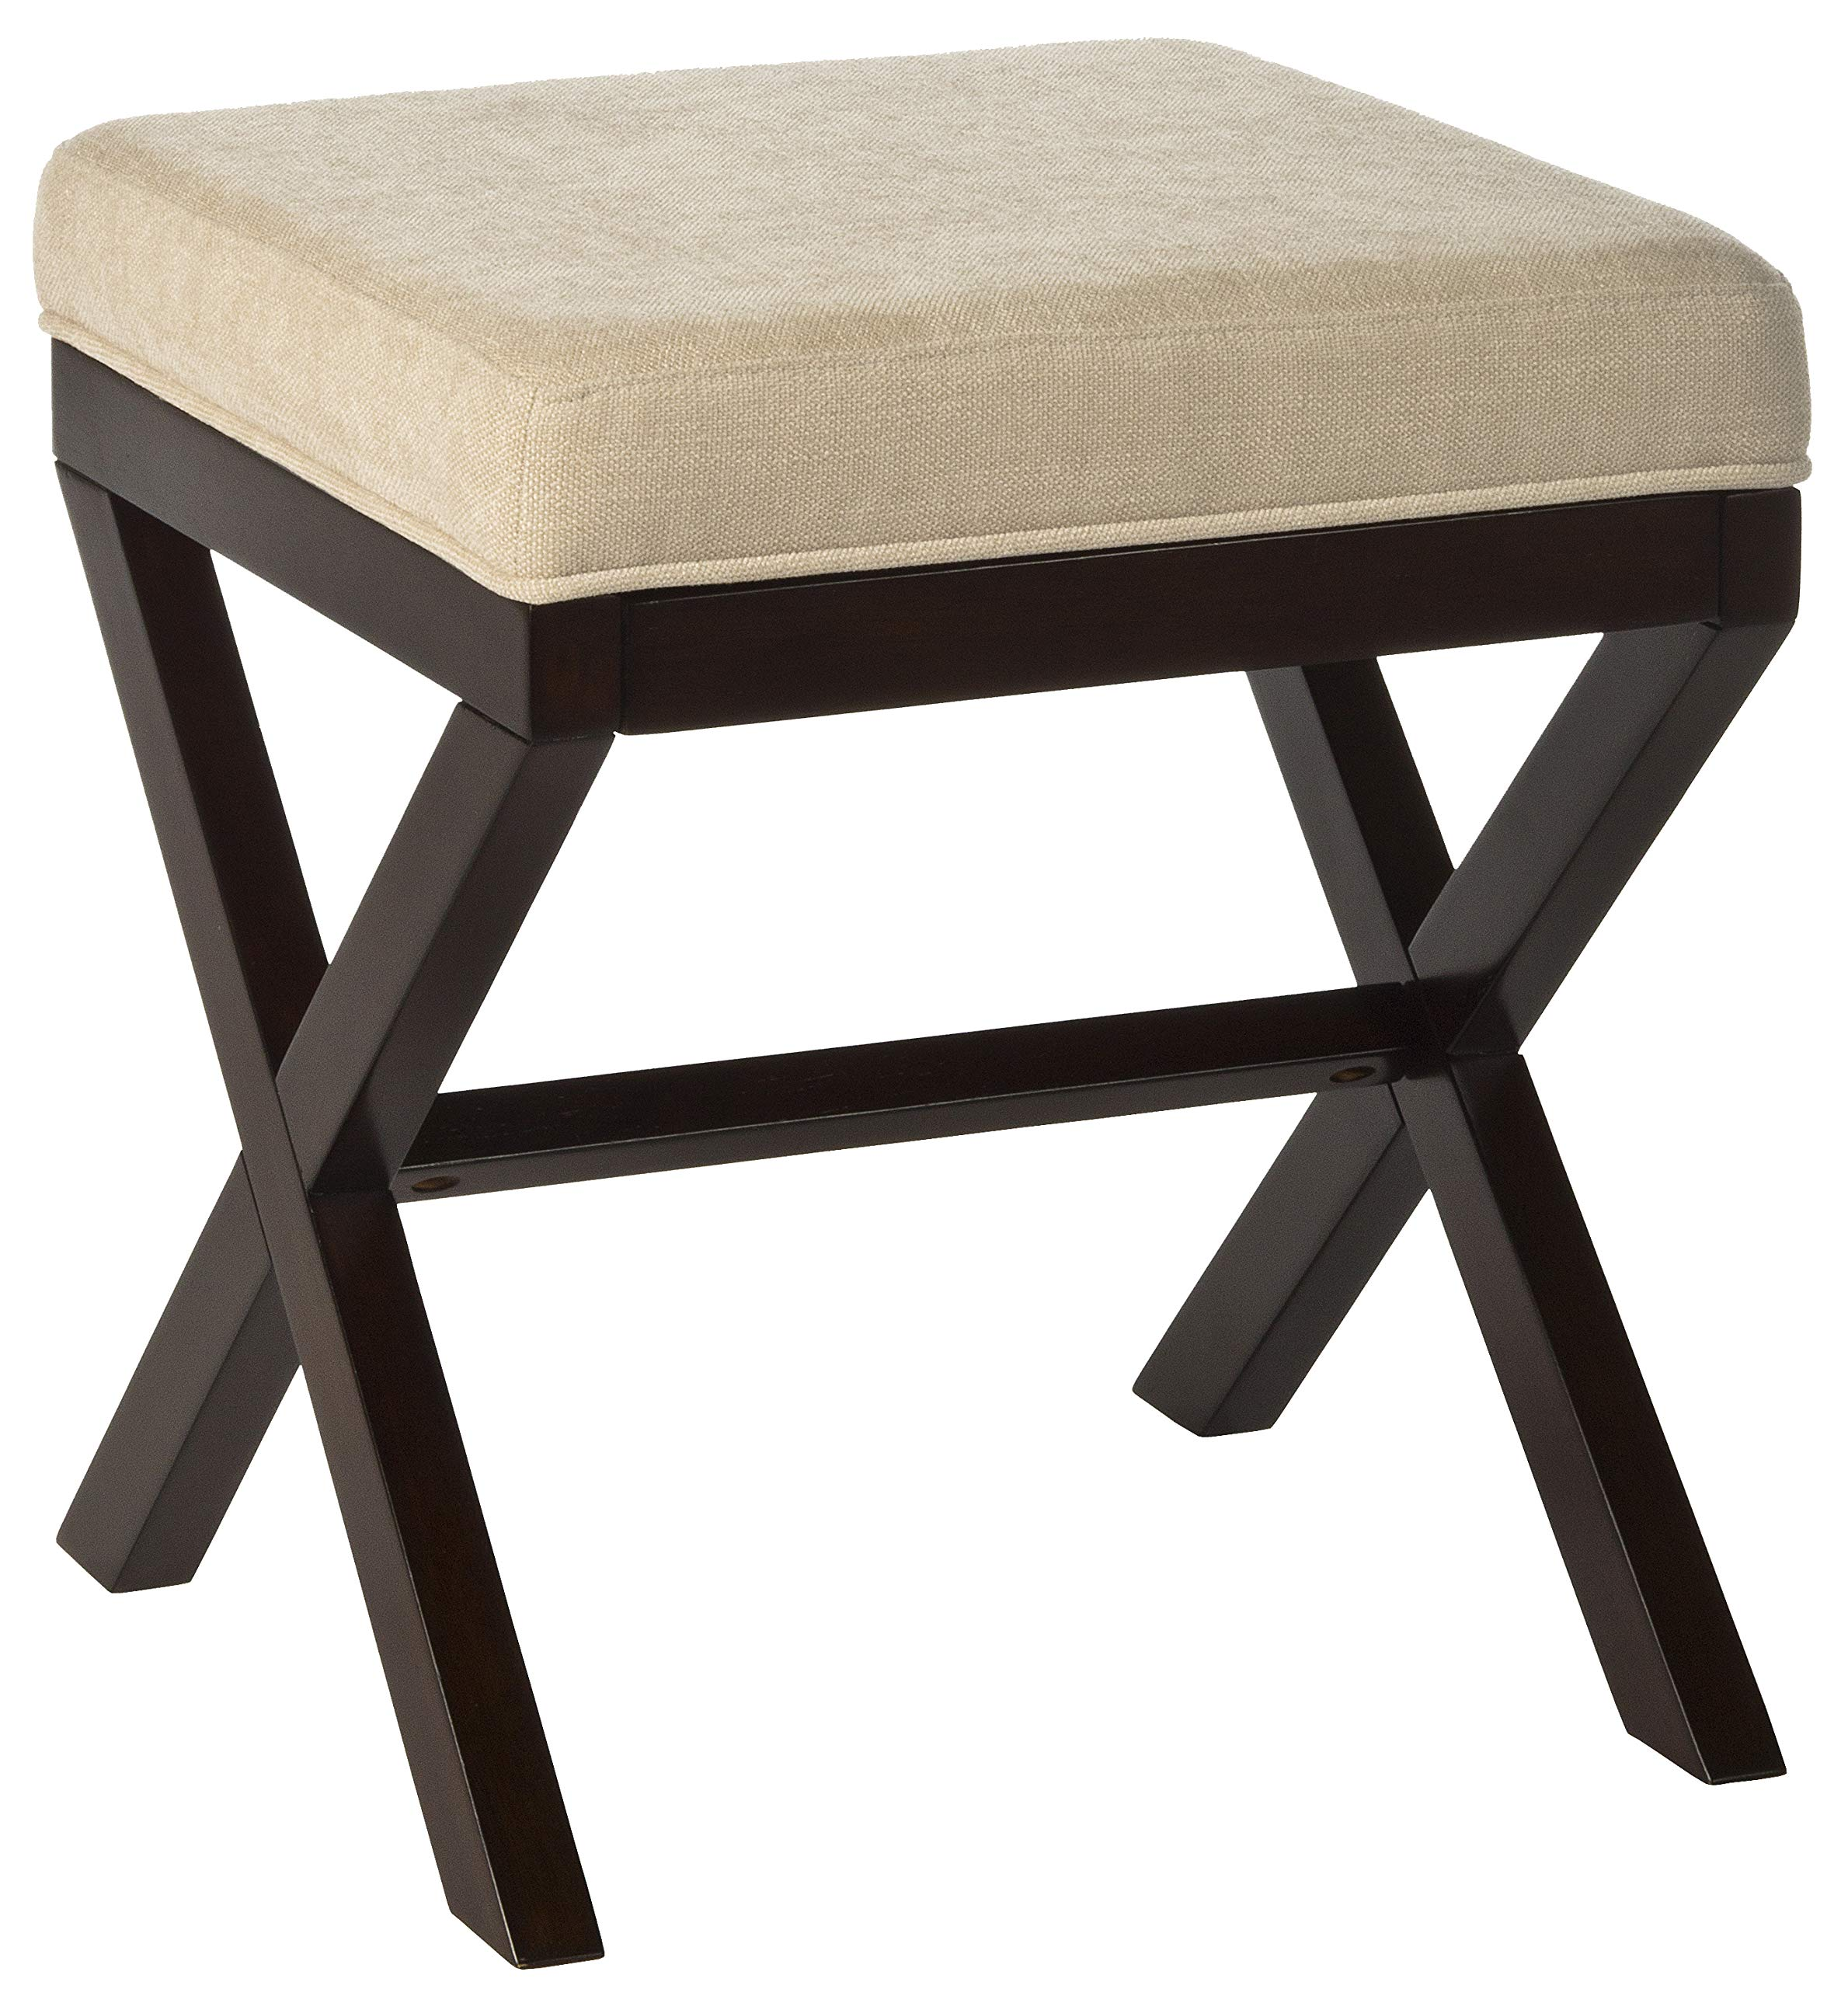 Hillsdale Furniture 50964 Morgan Vanity Stool, Espresso Wood and Stone Upholstery by Hillsdale Furniture